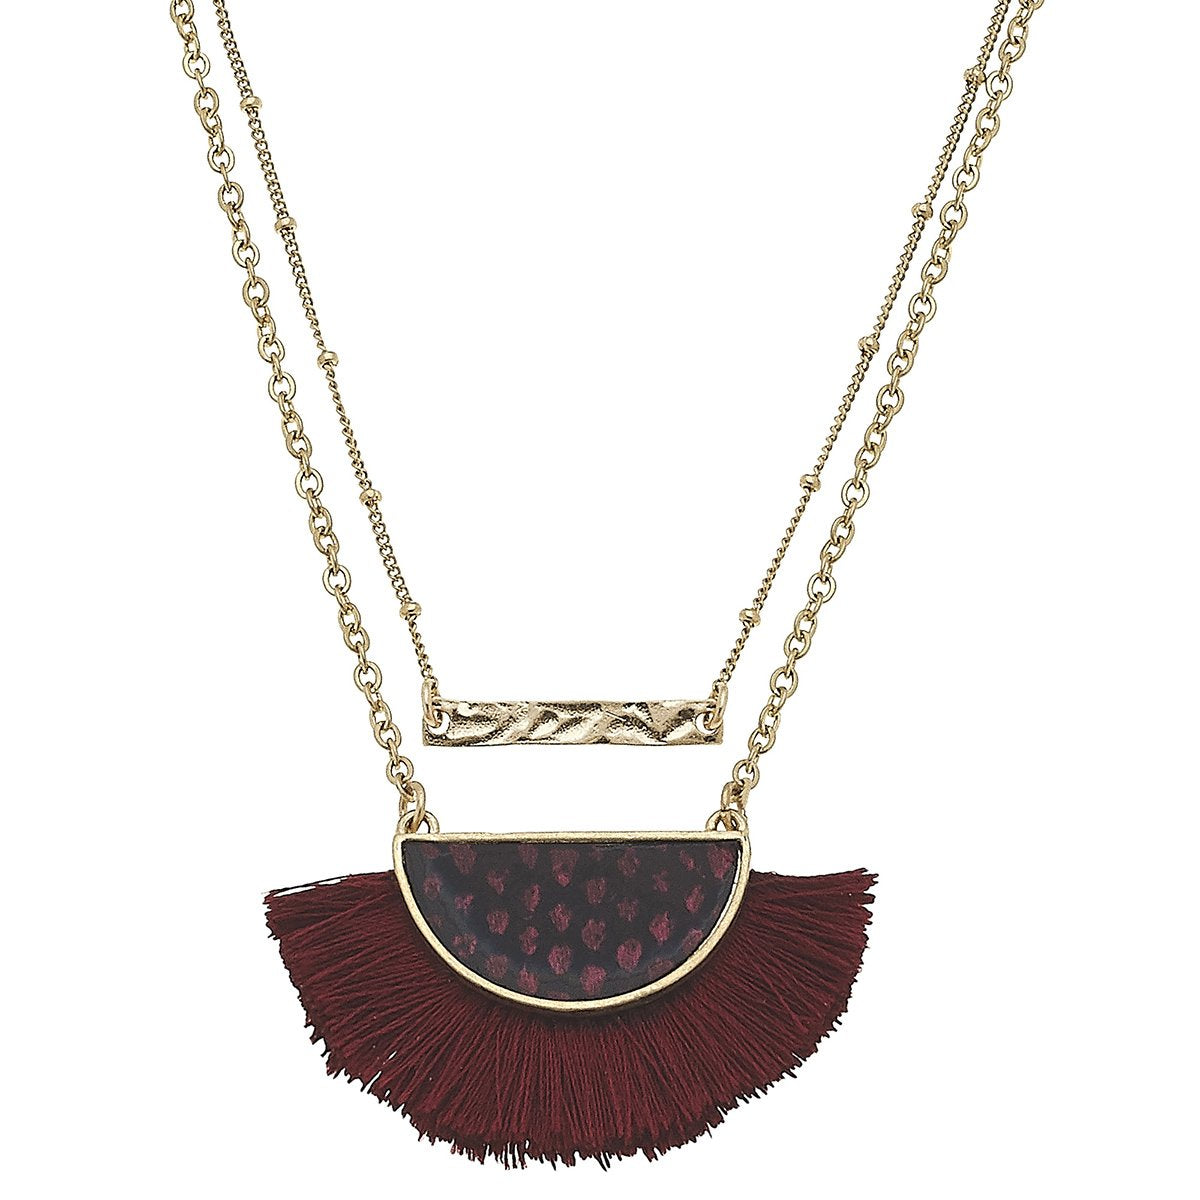 Layered Python-Print Tassel Necklace in Burgundy